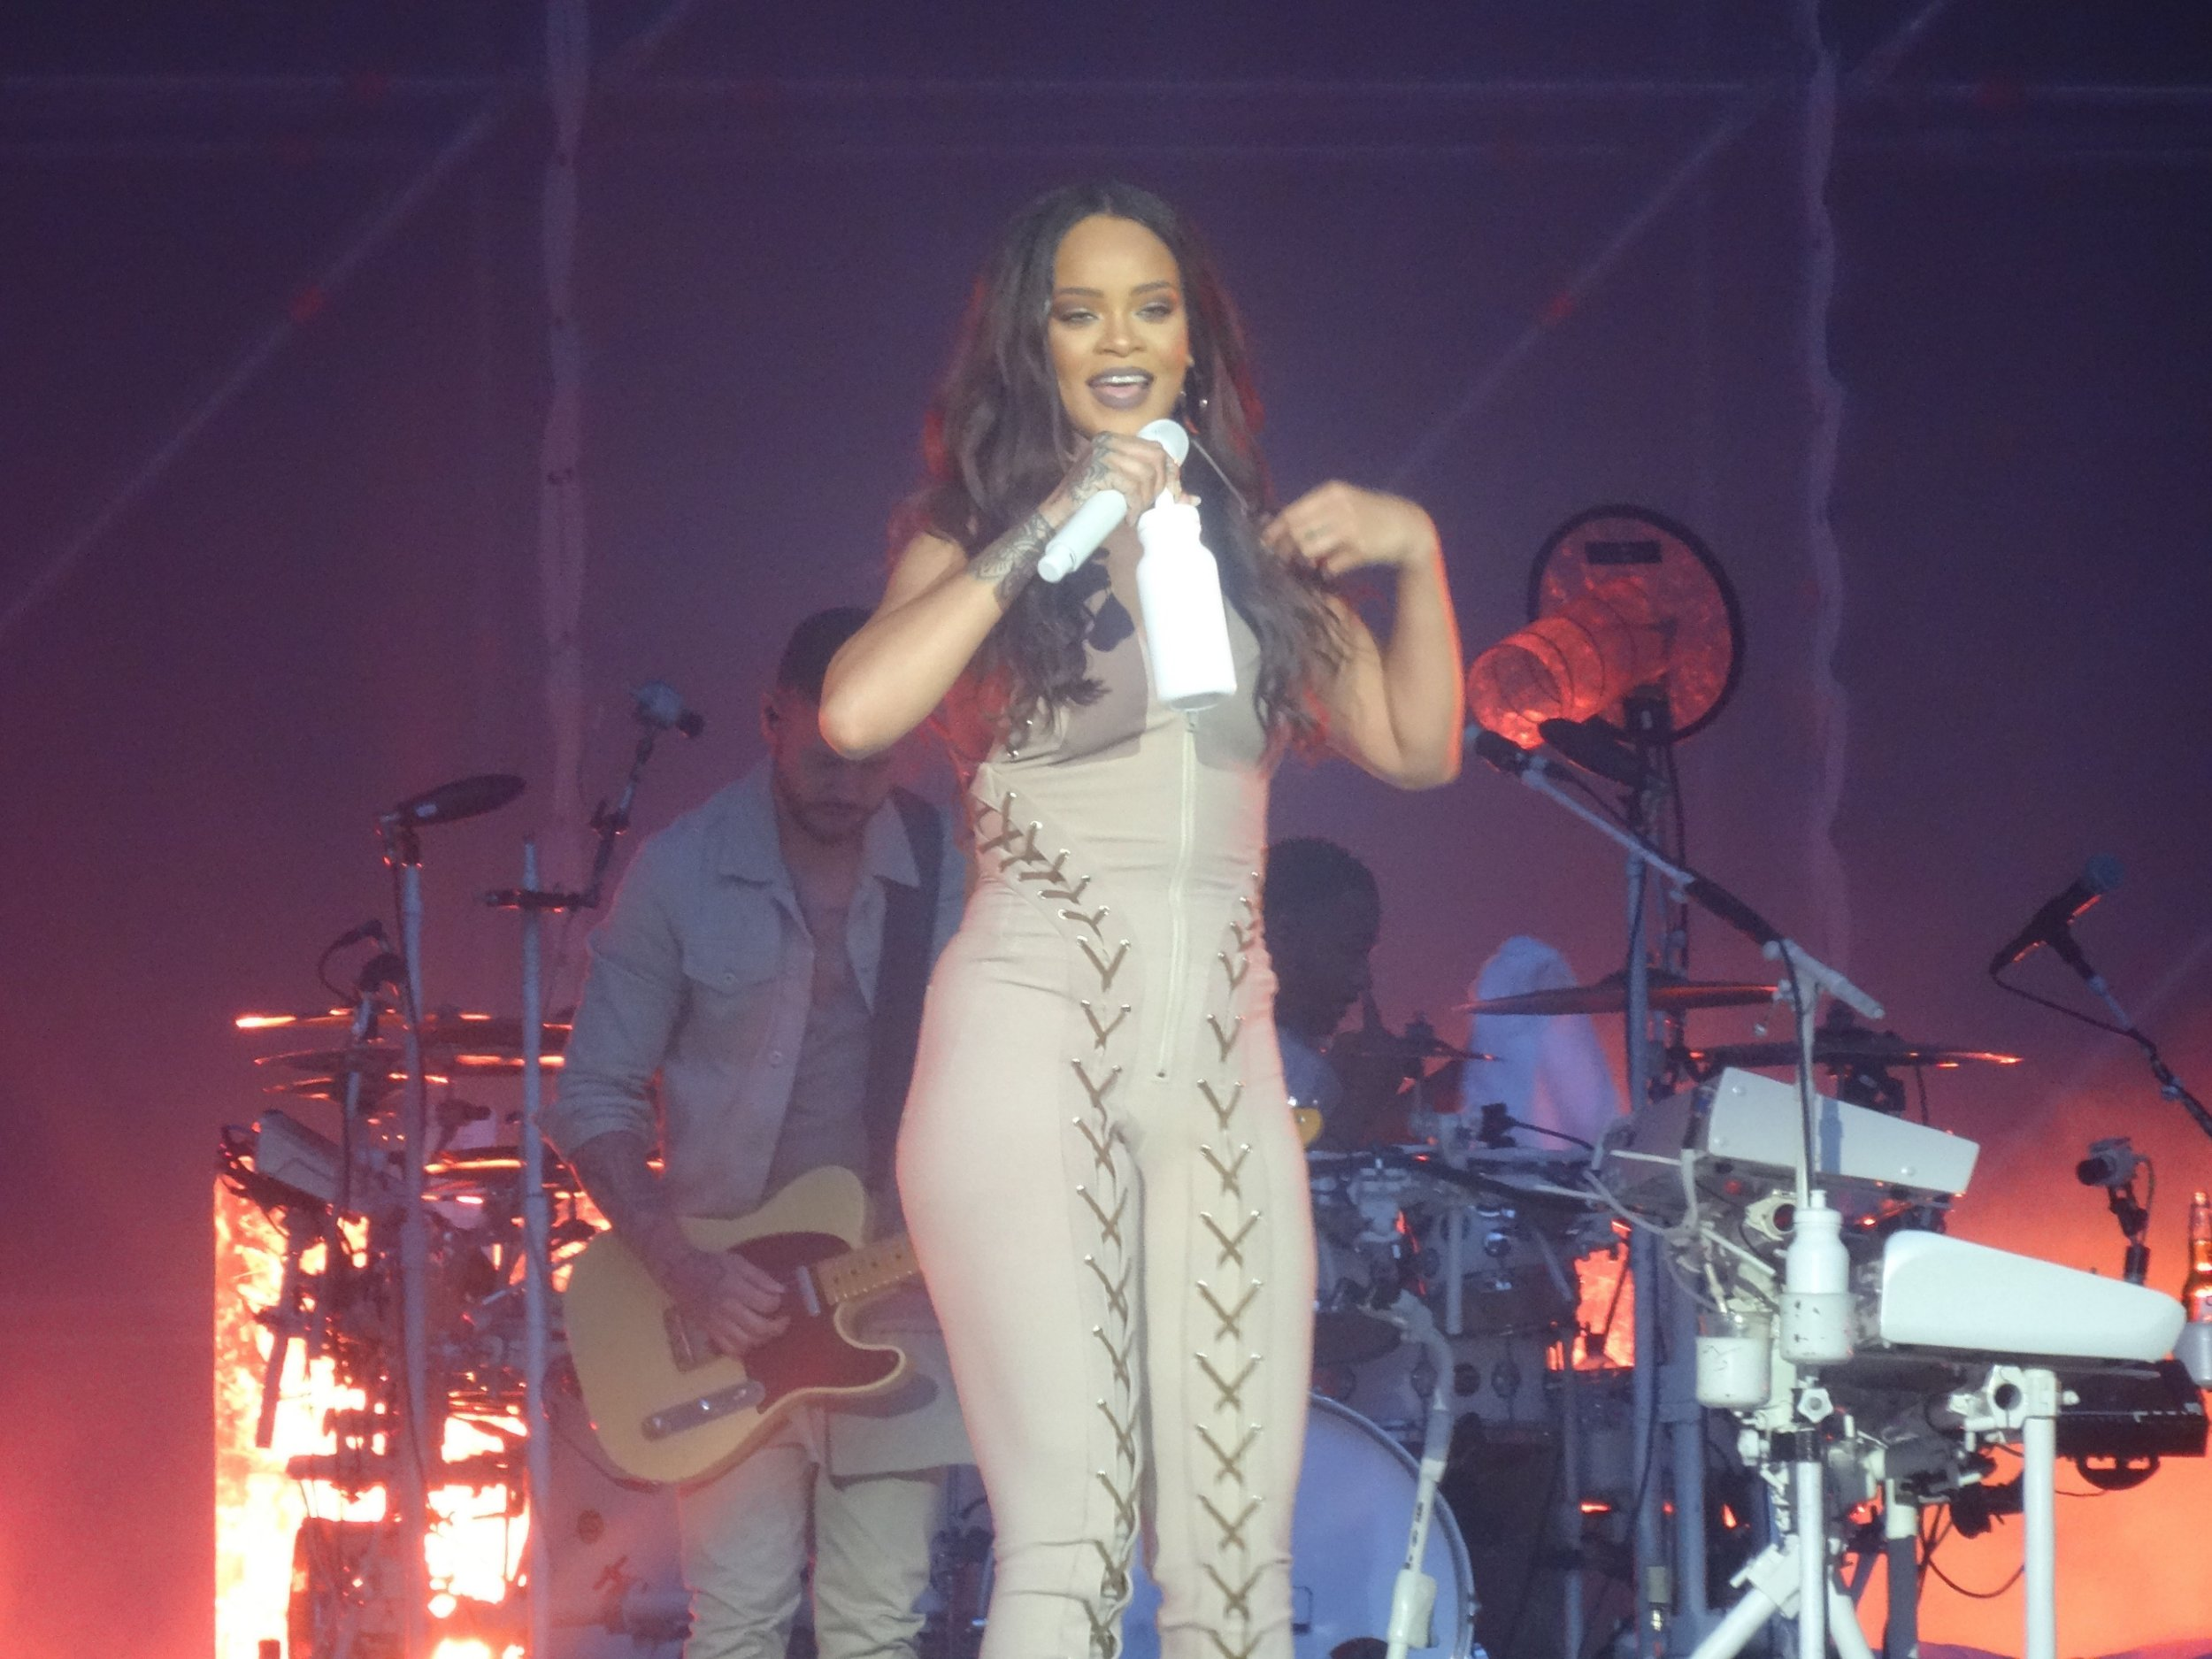 Picture Shows: Rihanna June 21, 2016 Singer Rihanna performs at the Aviva Stadium in Dublin, Ireland. Non Exclusive WORLDWIDE RIGHTS - NO IRELAND Pictures by : FameFlynet UK © 2016 Tel : +44 (0)20 3551 5049 Email : info@fameflynet.uk.com